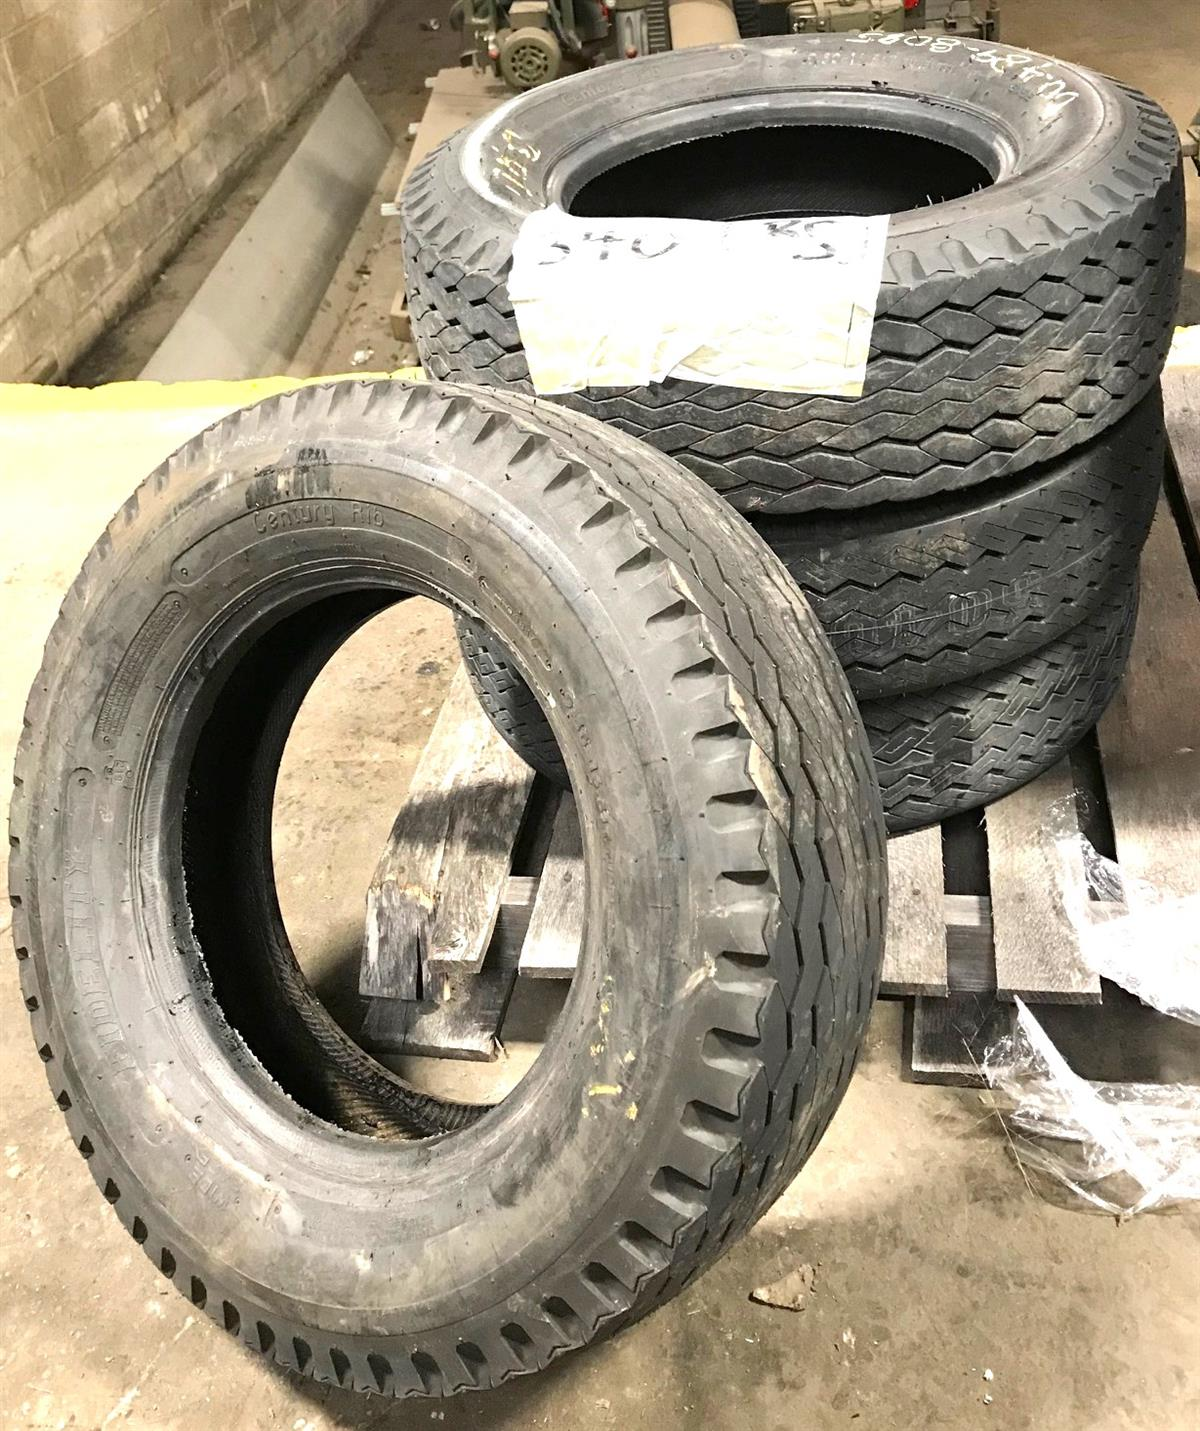 TI-405 | TI-405  S.T.A. Super Transport 9.50-16.5LT Tire (4 Tire Lot Sale) (Used)(3).jpg